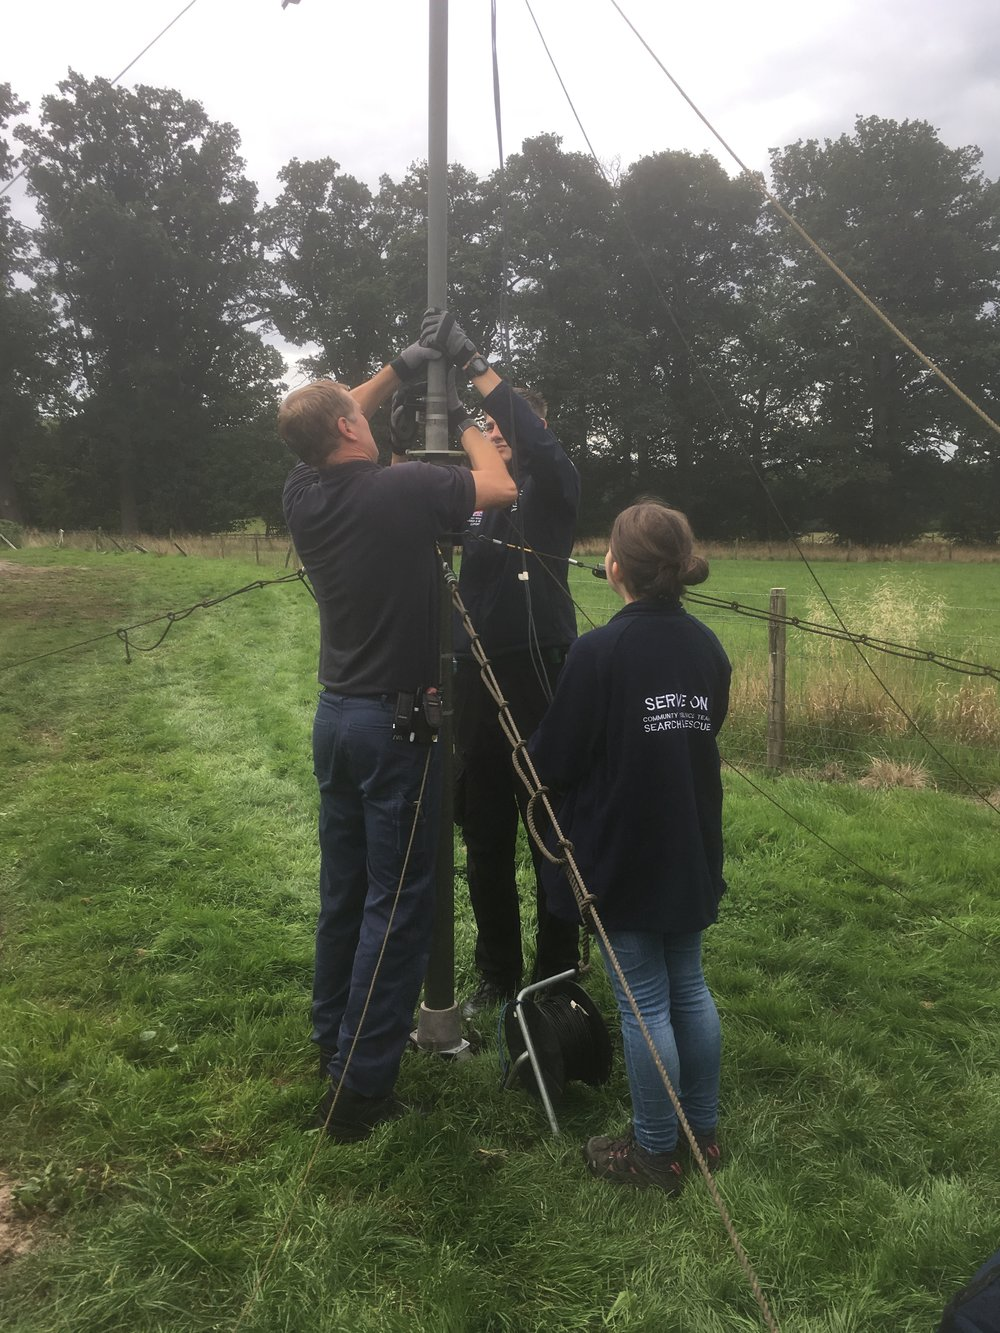 Serve On @RescueRookies Ethan and Jazz setting up the @SERVE_ON Operations Room communications mast with Operations manager Craig ready for the @GlowintheparkUK event @Longleat in aid of @AlabareUK.